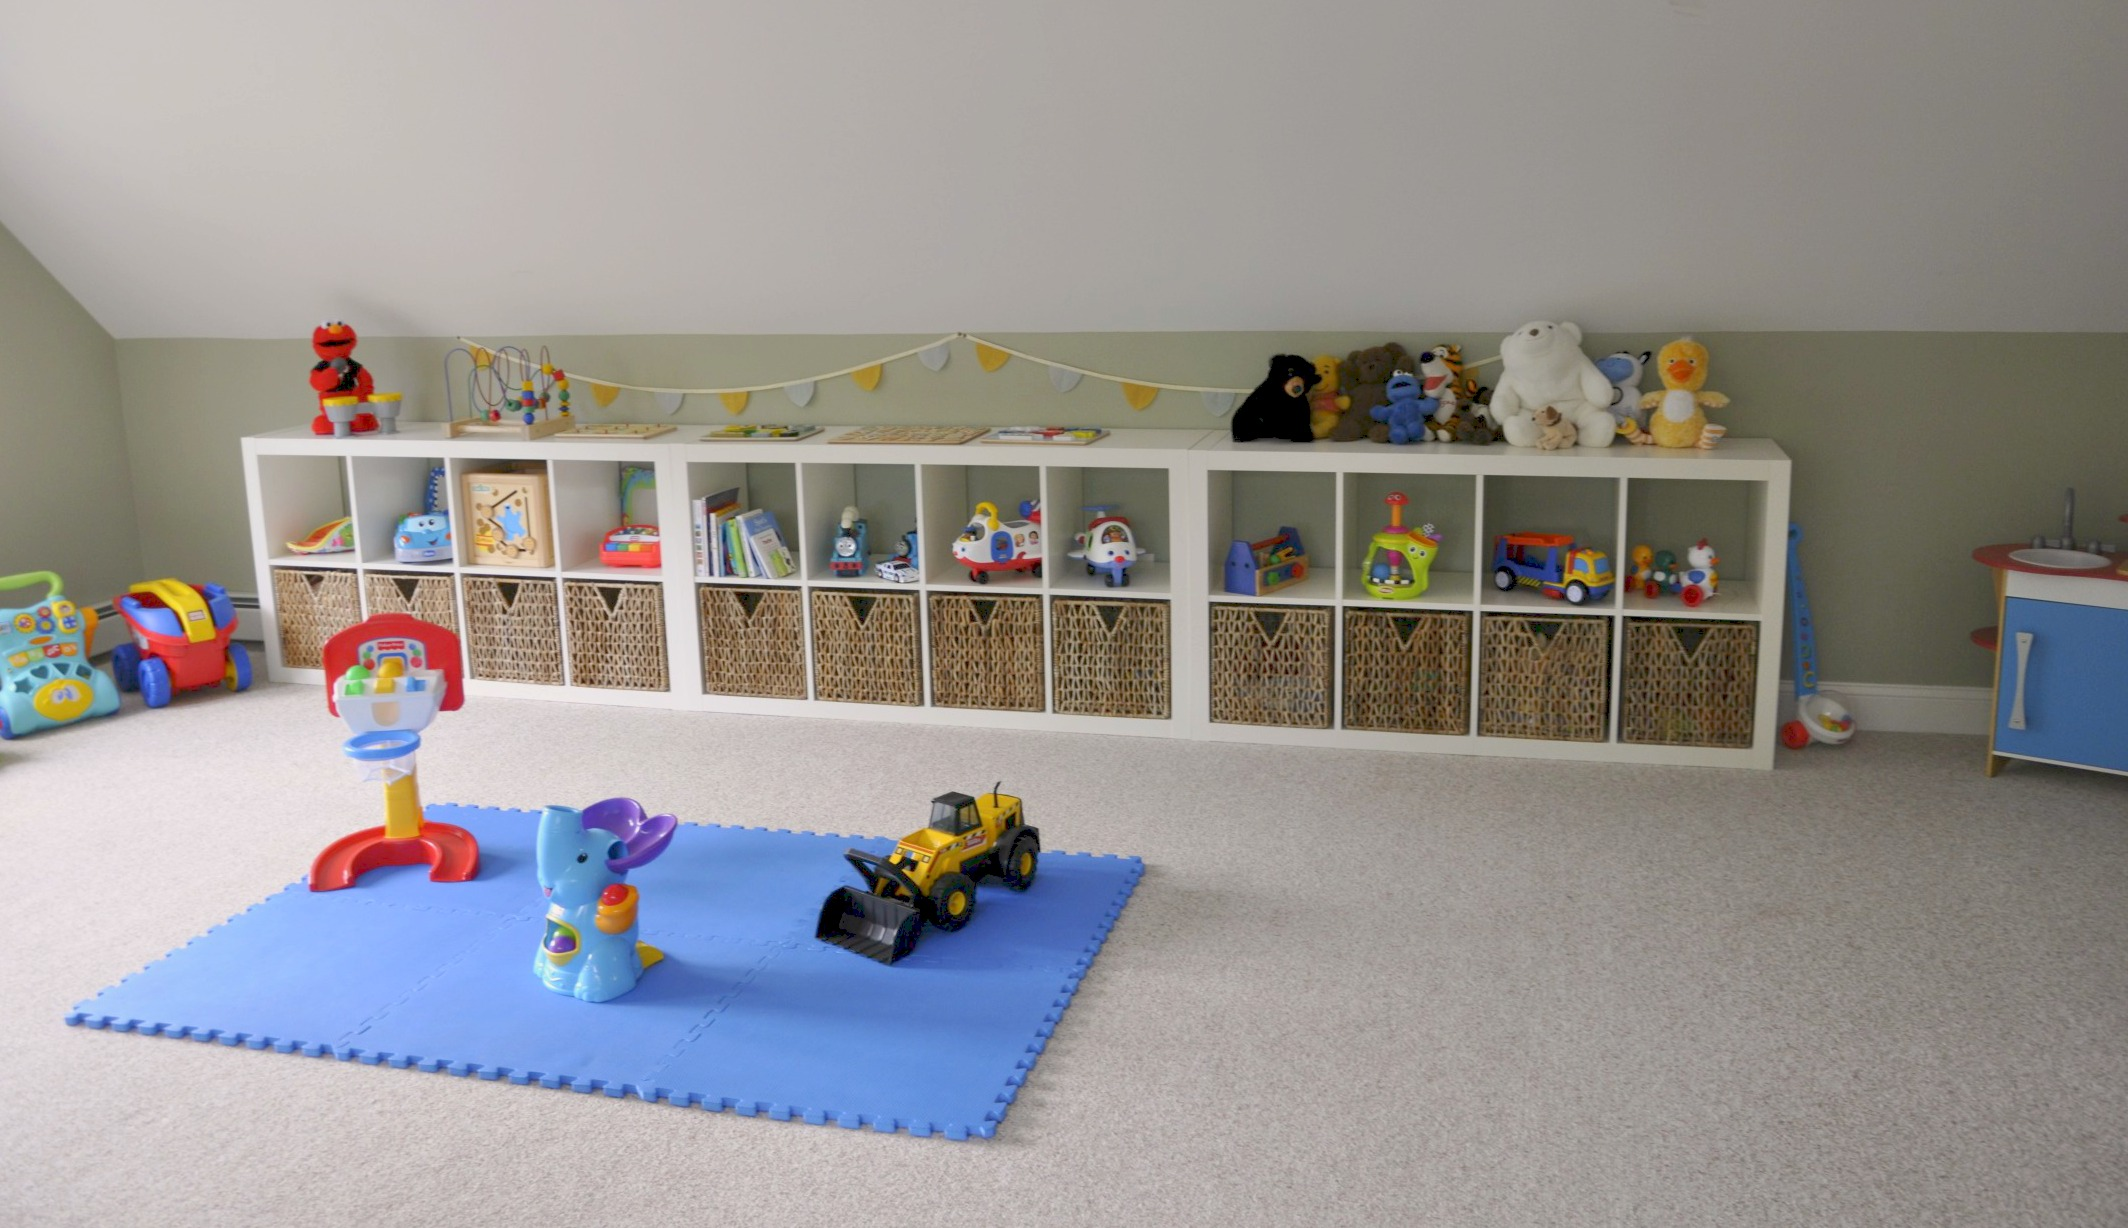 Childrens Kids Bedroom Furniture Set Toy Chest Boxes Ikea: Ikea Expedit Playroom Storage